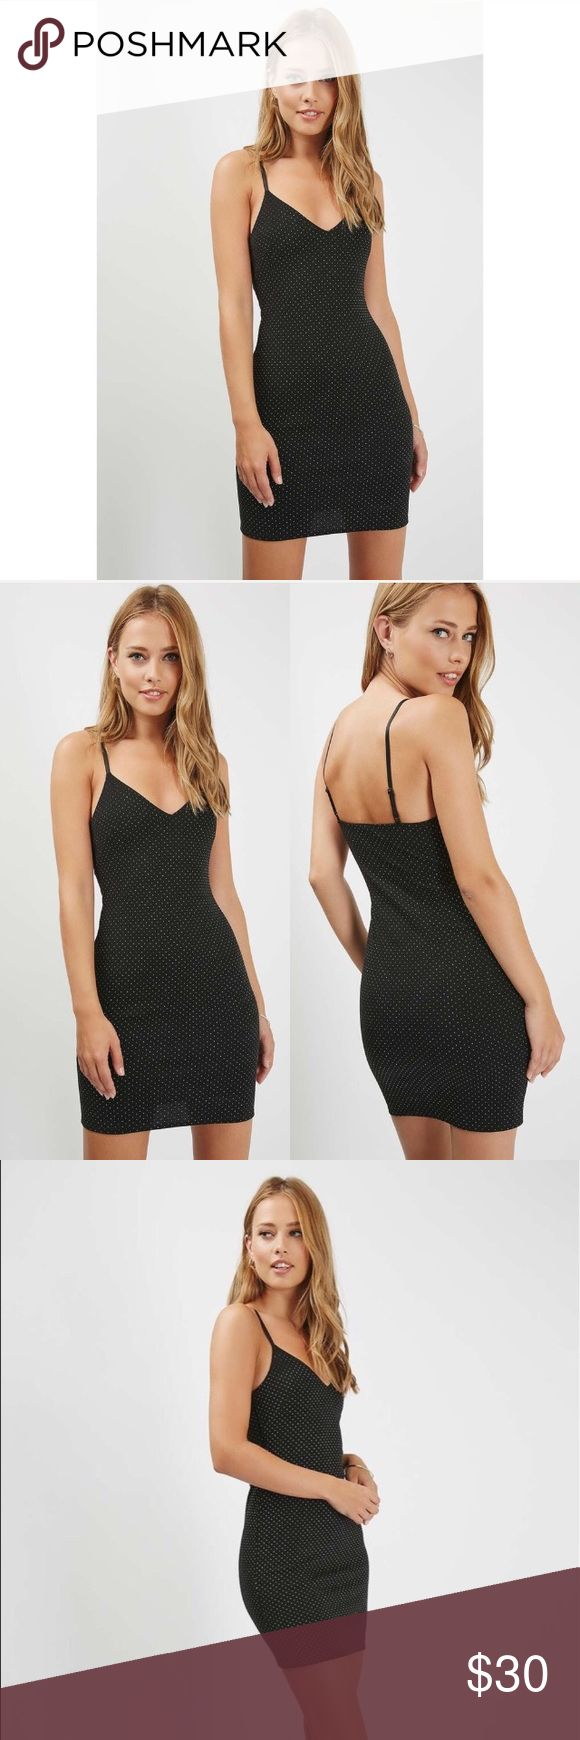 NWT Topshop Study Bodycon Dress Add a subtle edge to your party wear with this black body on dress with cami-style straps and cool stud detailing. Wear with metallic sandals for a show-stopping look. Size 8. New with tags. ✨ Feel free to ask any questions. No trades or outside transactions. Offers welcomed. Bundle to save more 🎈 Topshop Dresses